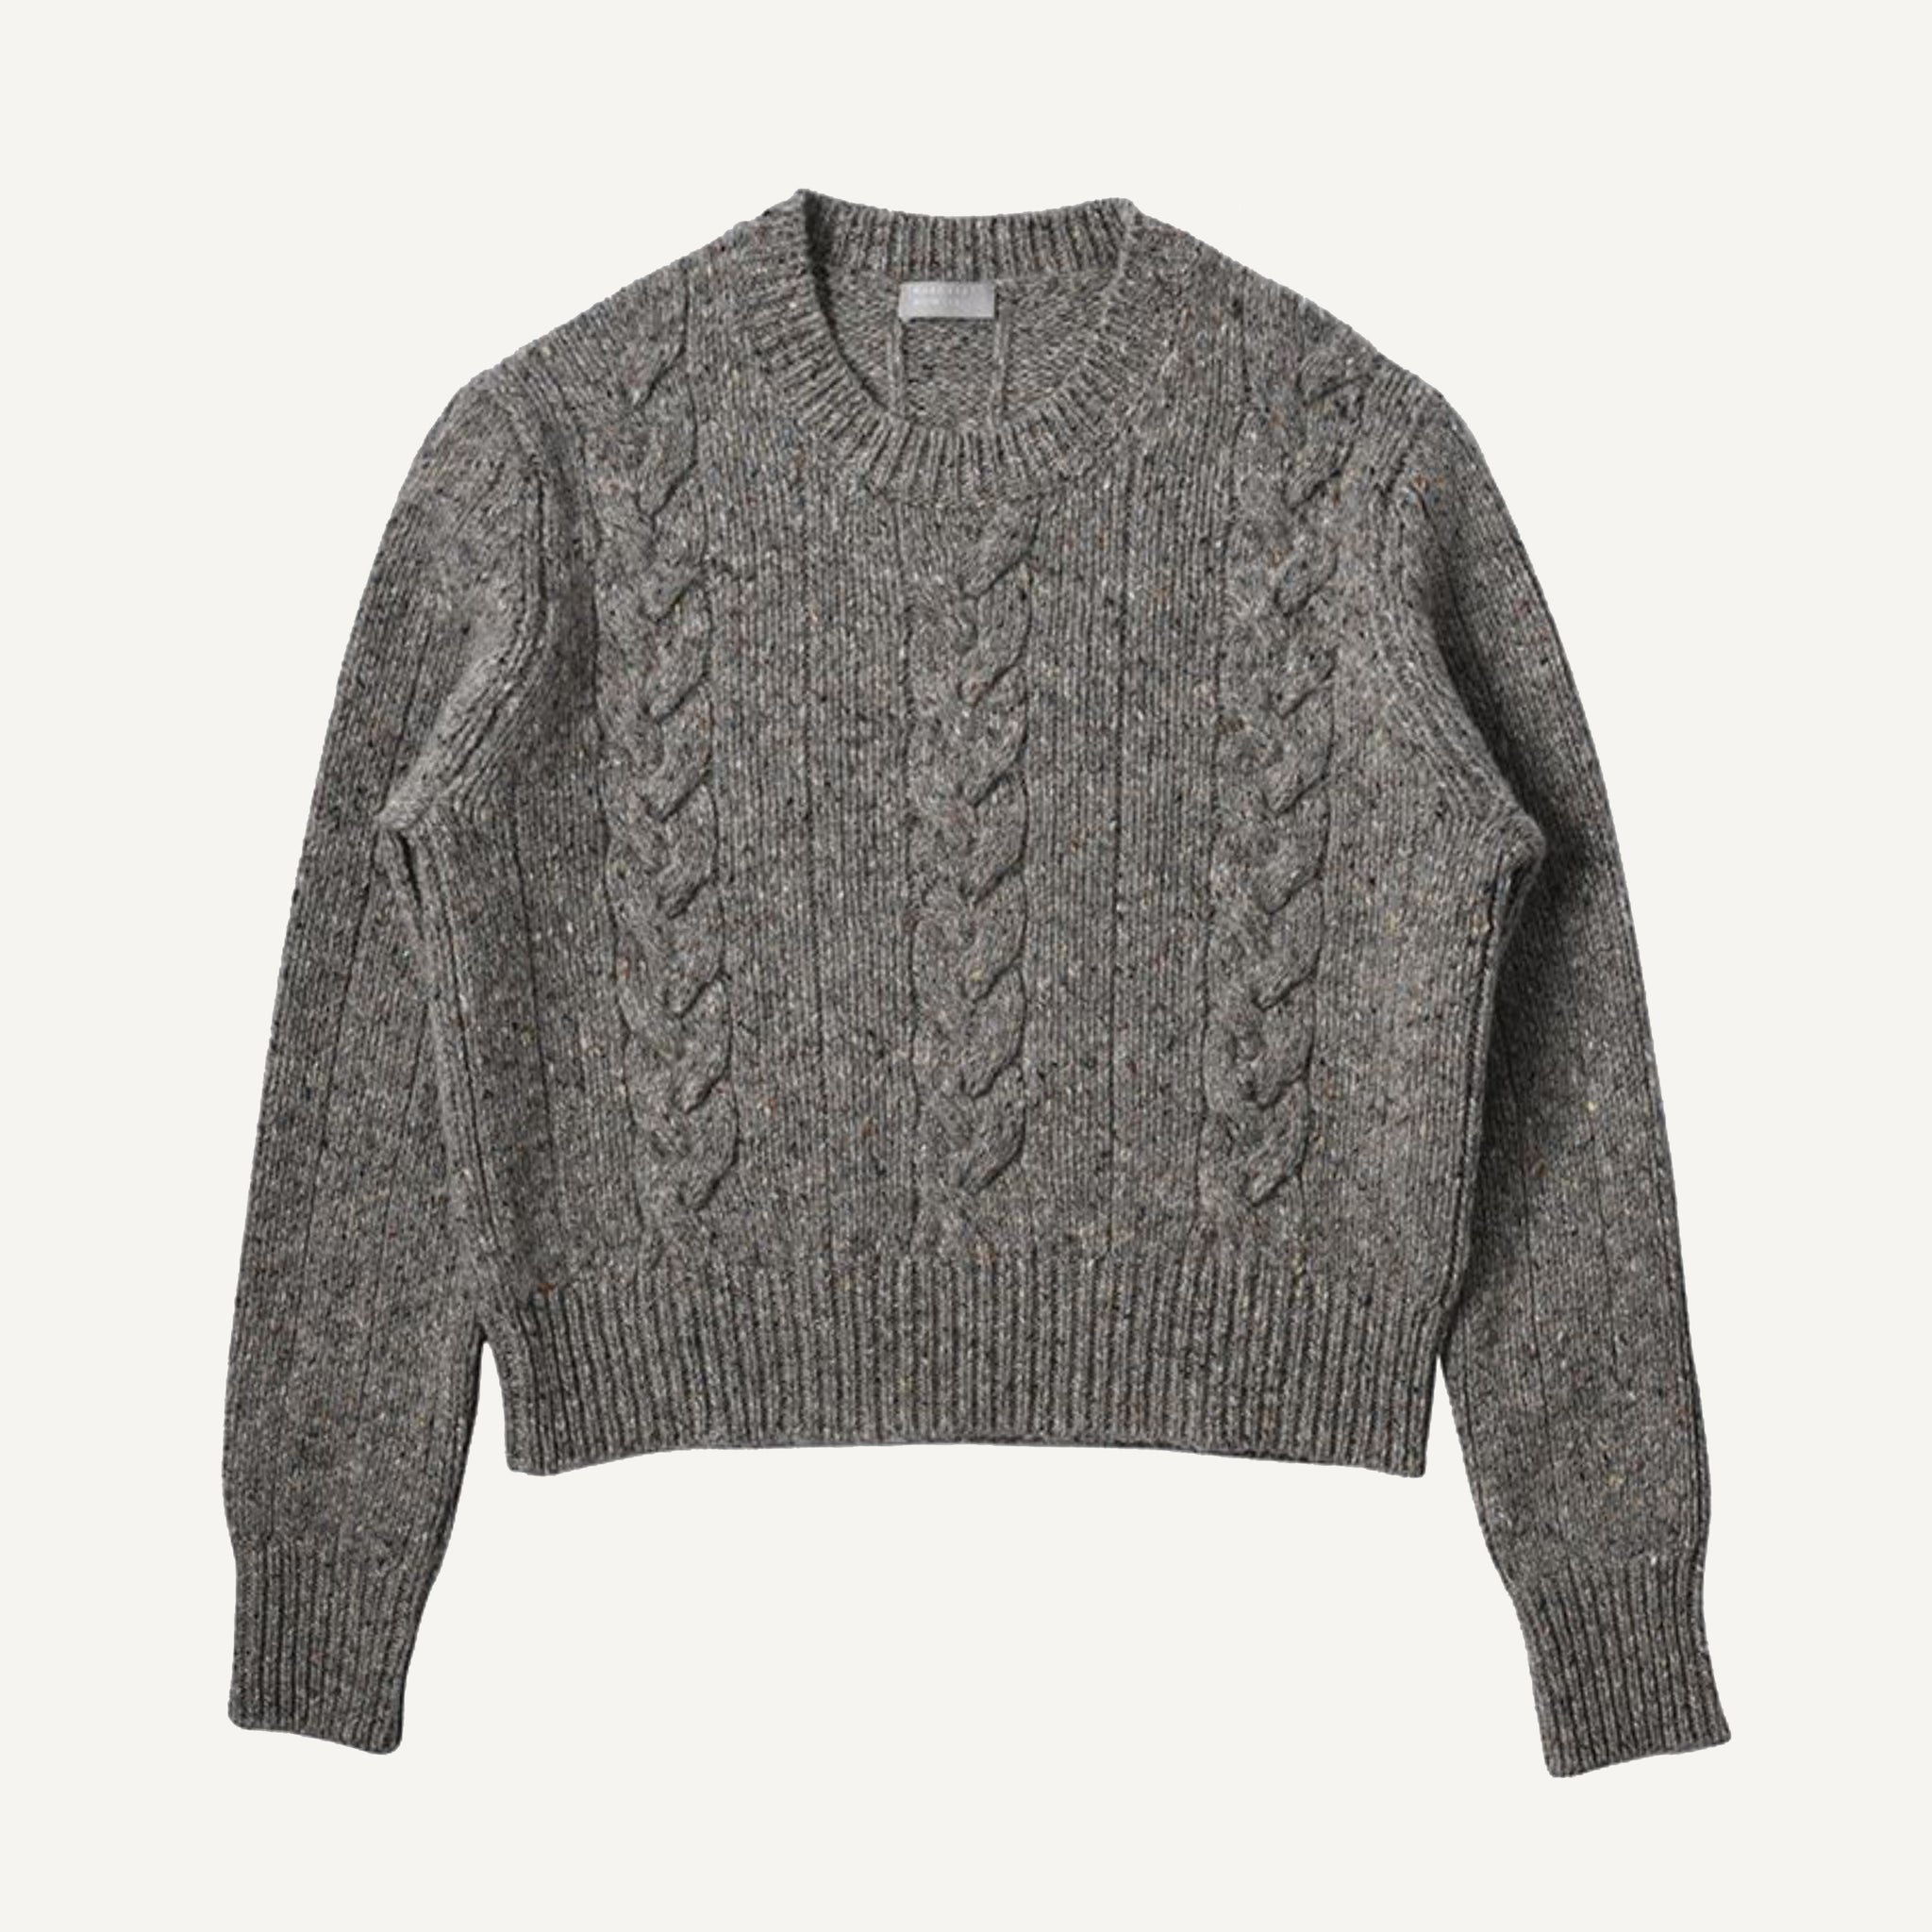 MARGARET HOWELL CABLE SWEATER